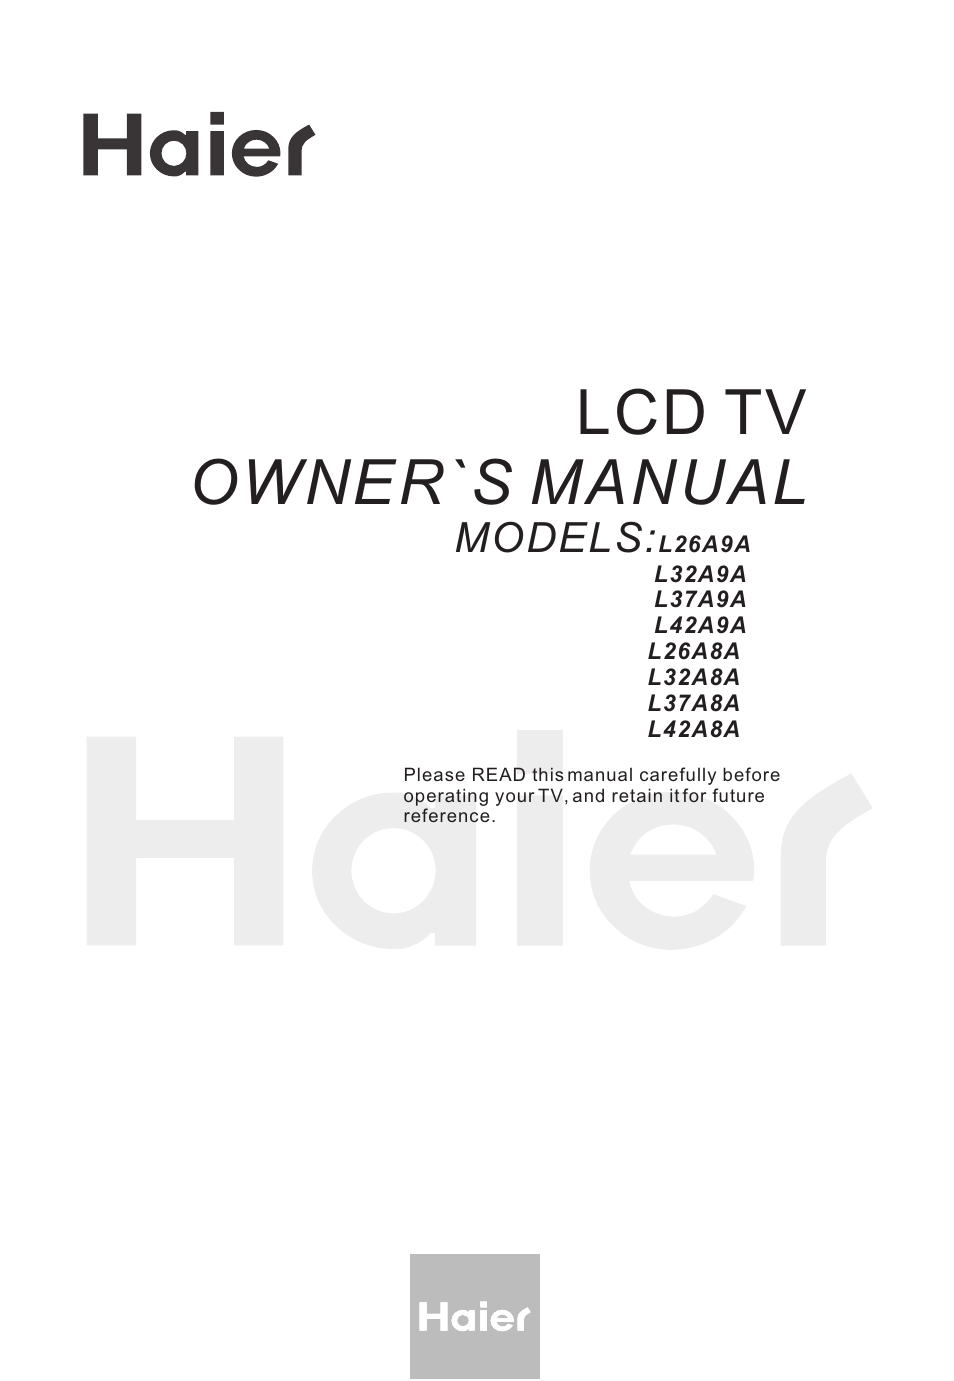 haier L32A8A User Manual | 39 pages | Also for: L26A8A, L37A8A, L42A8A,  L32A9A, L37A9A, L26A9A, L42A9A